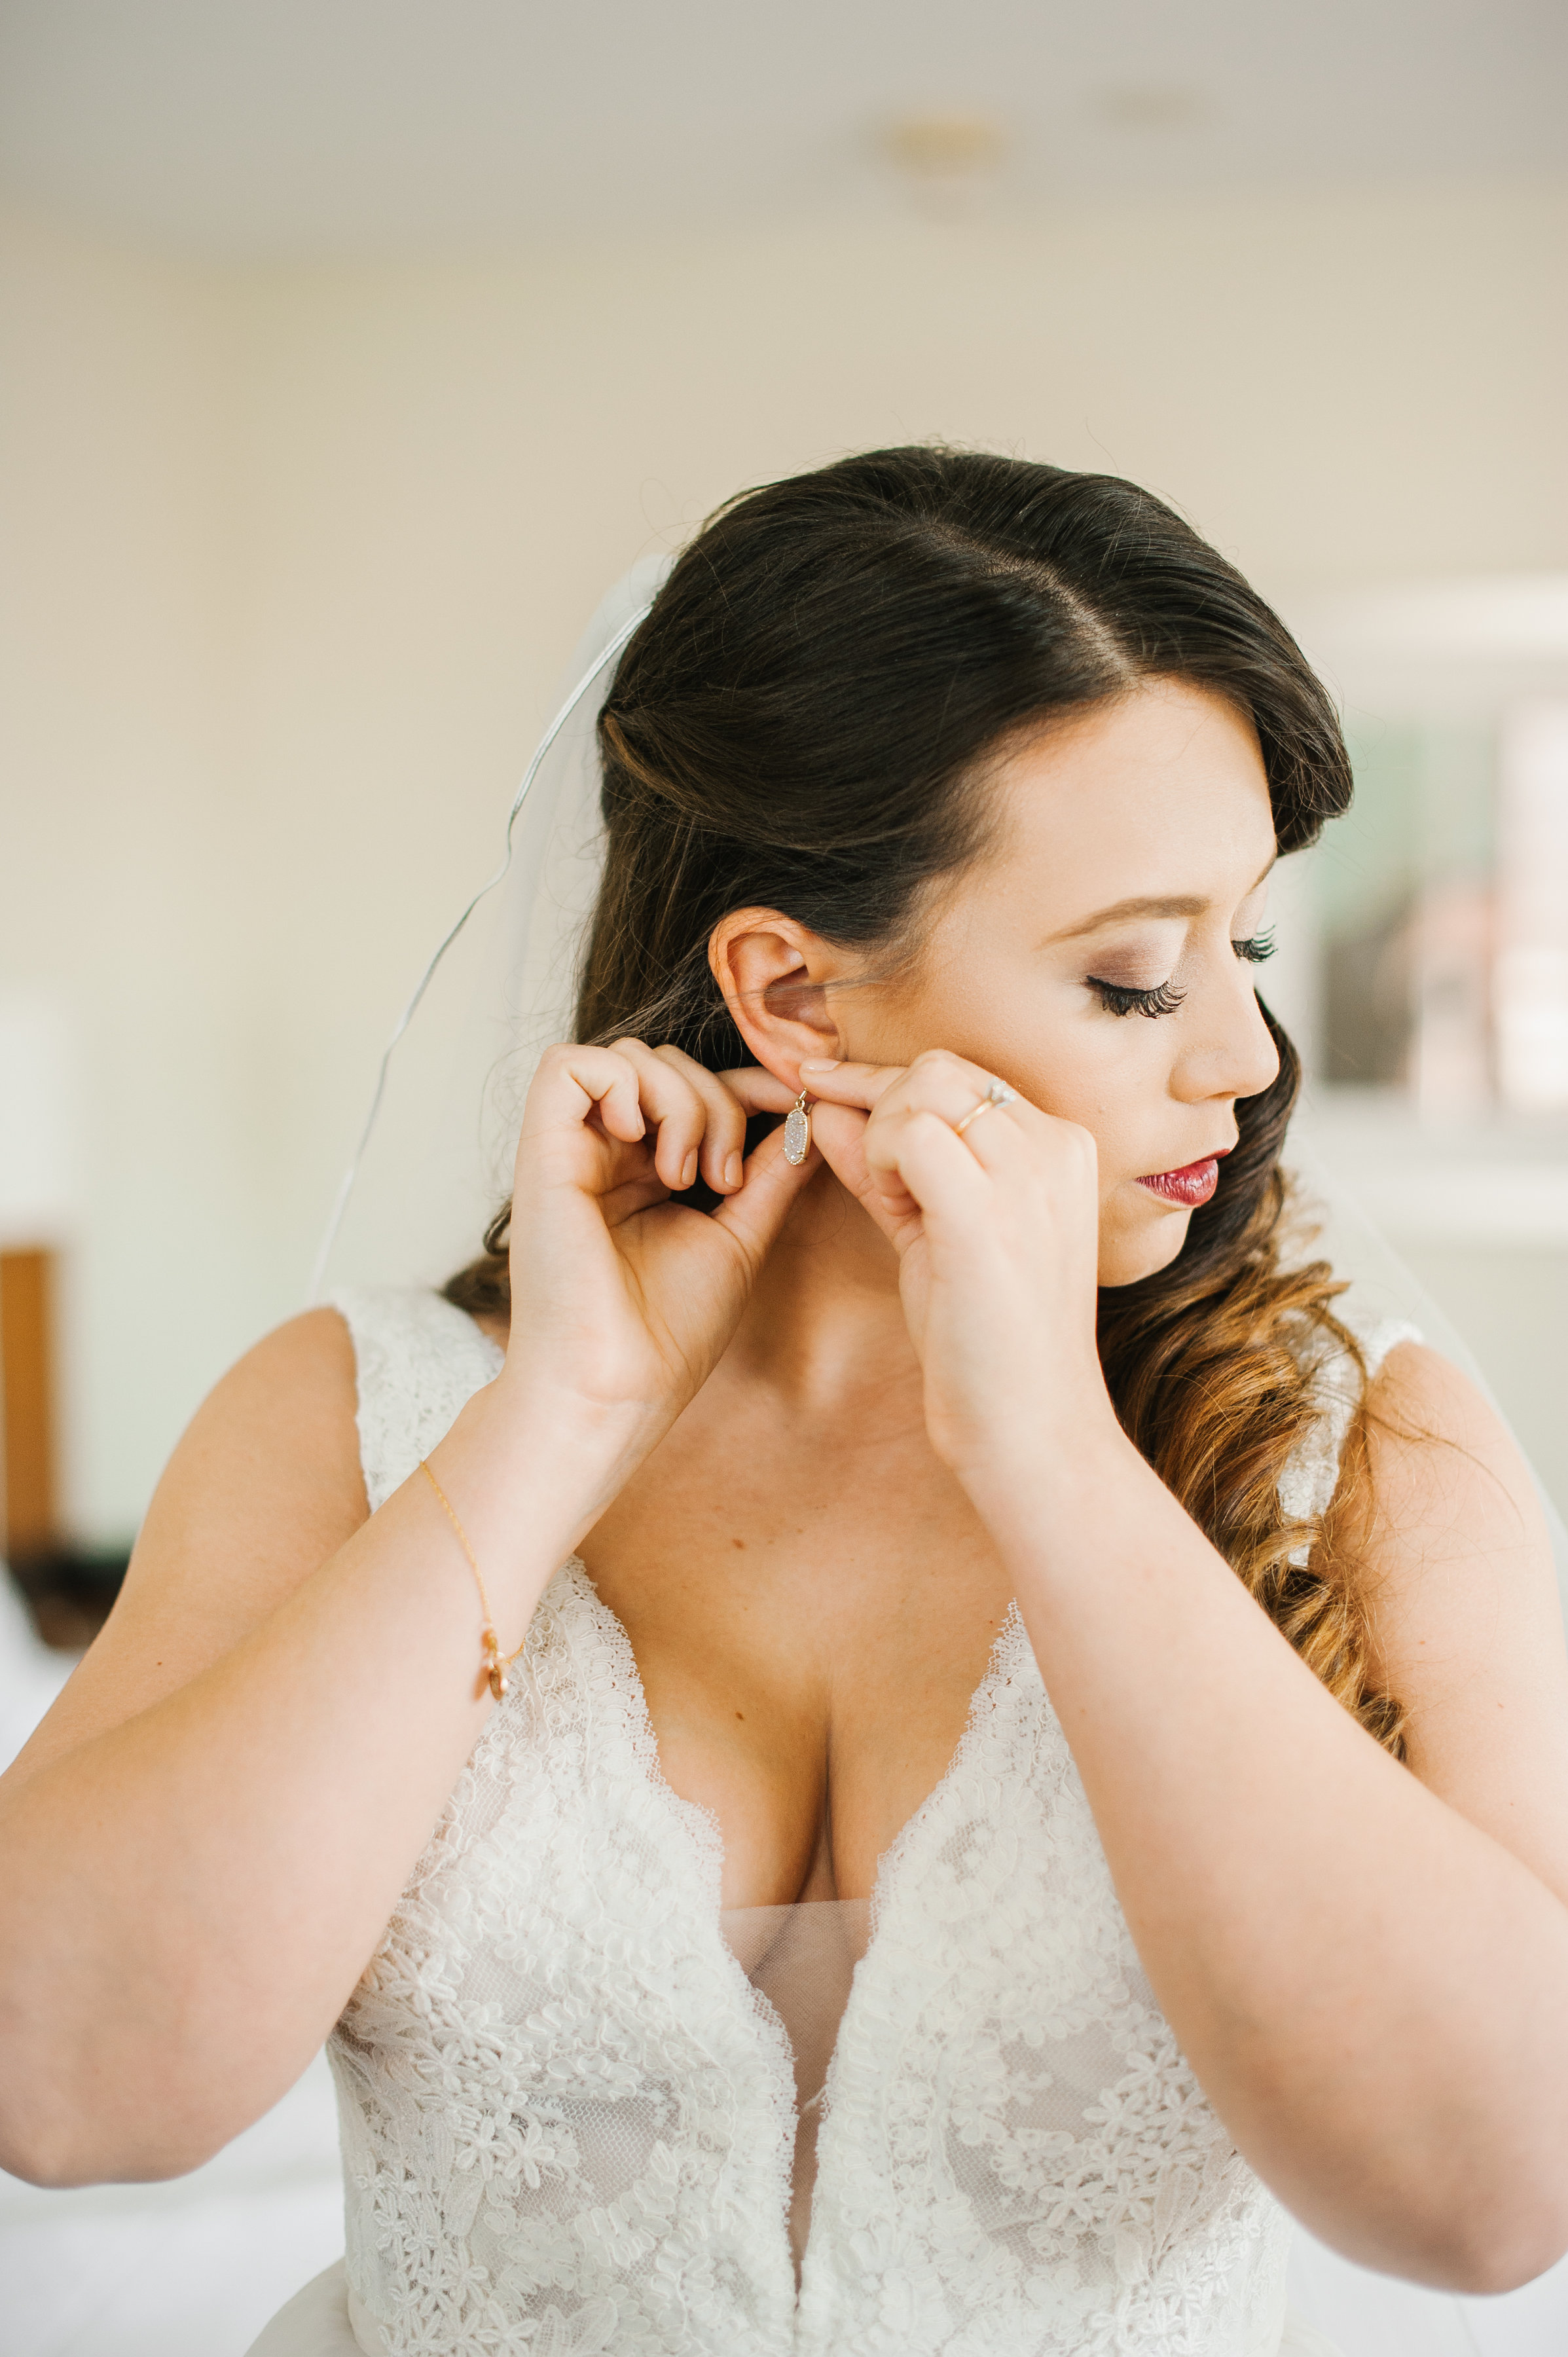 The bride looking stunningly gorgeous in her plunging lace illusion neckline gown.